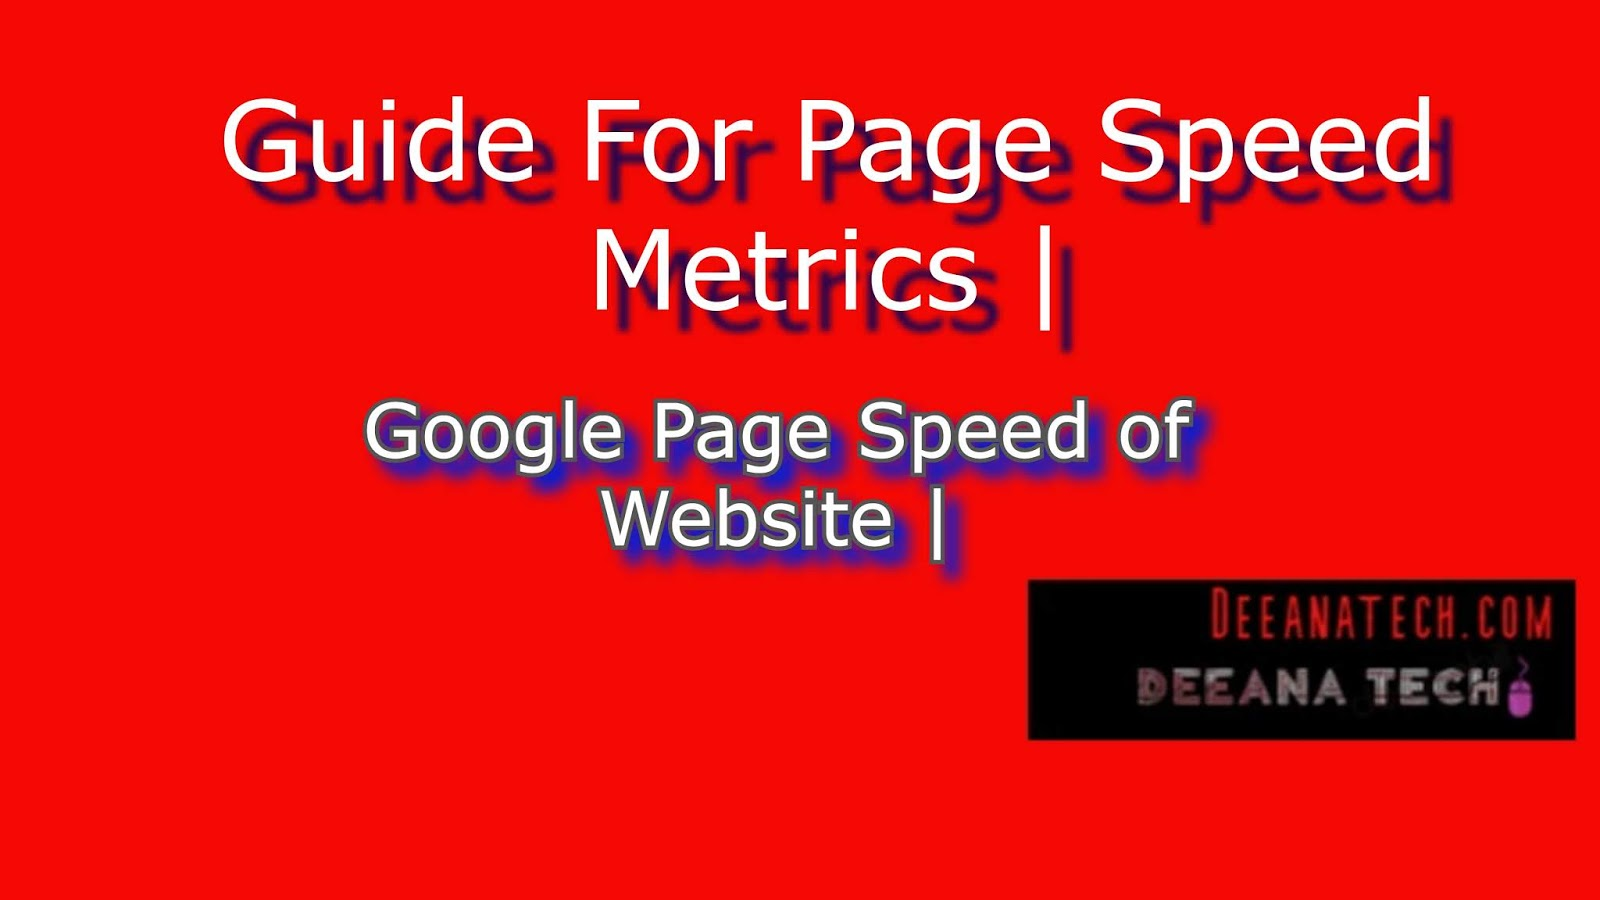 Guide For Page Speed, check Google page speed and web page speed test- deeanatech.com